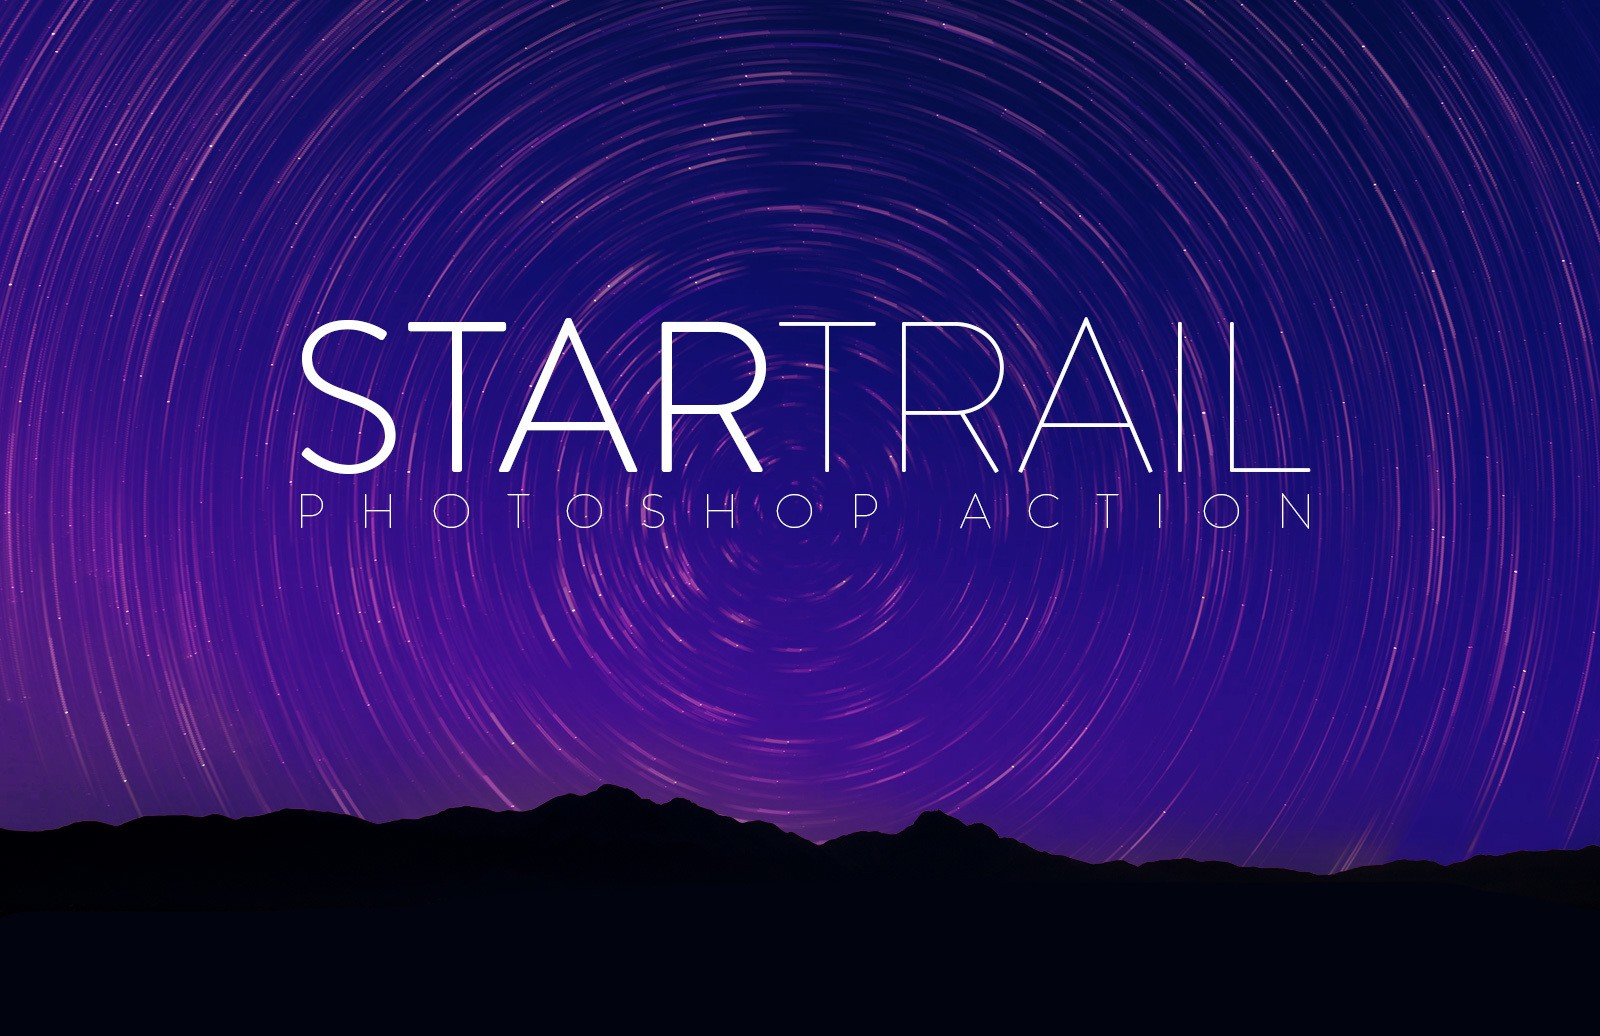 Star Trail Photoshop Action Preview 1